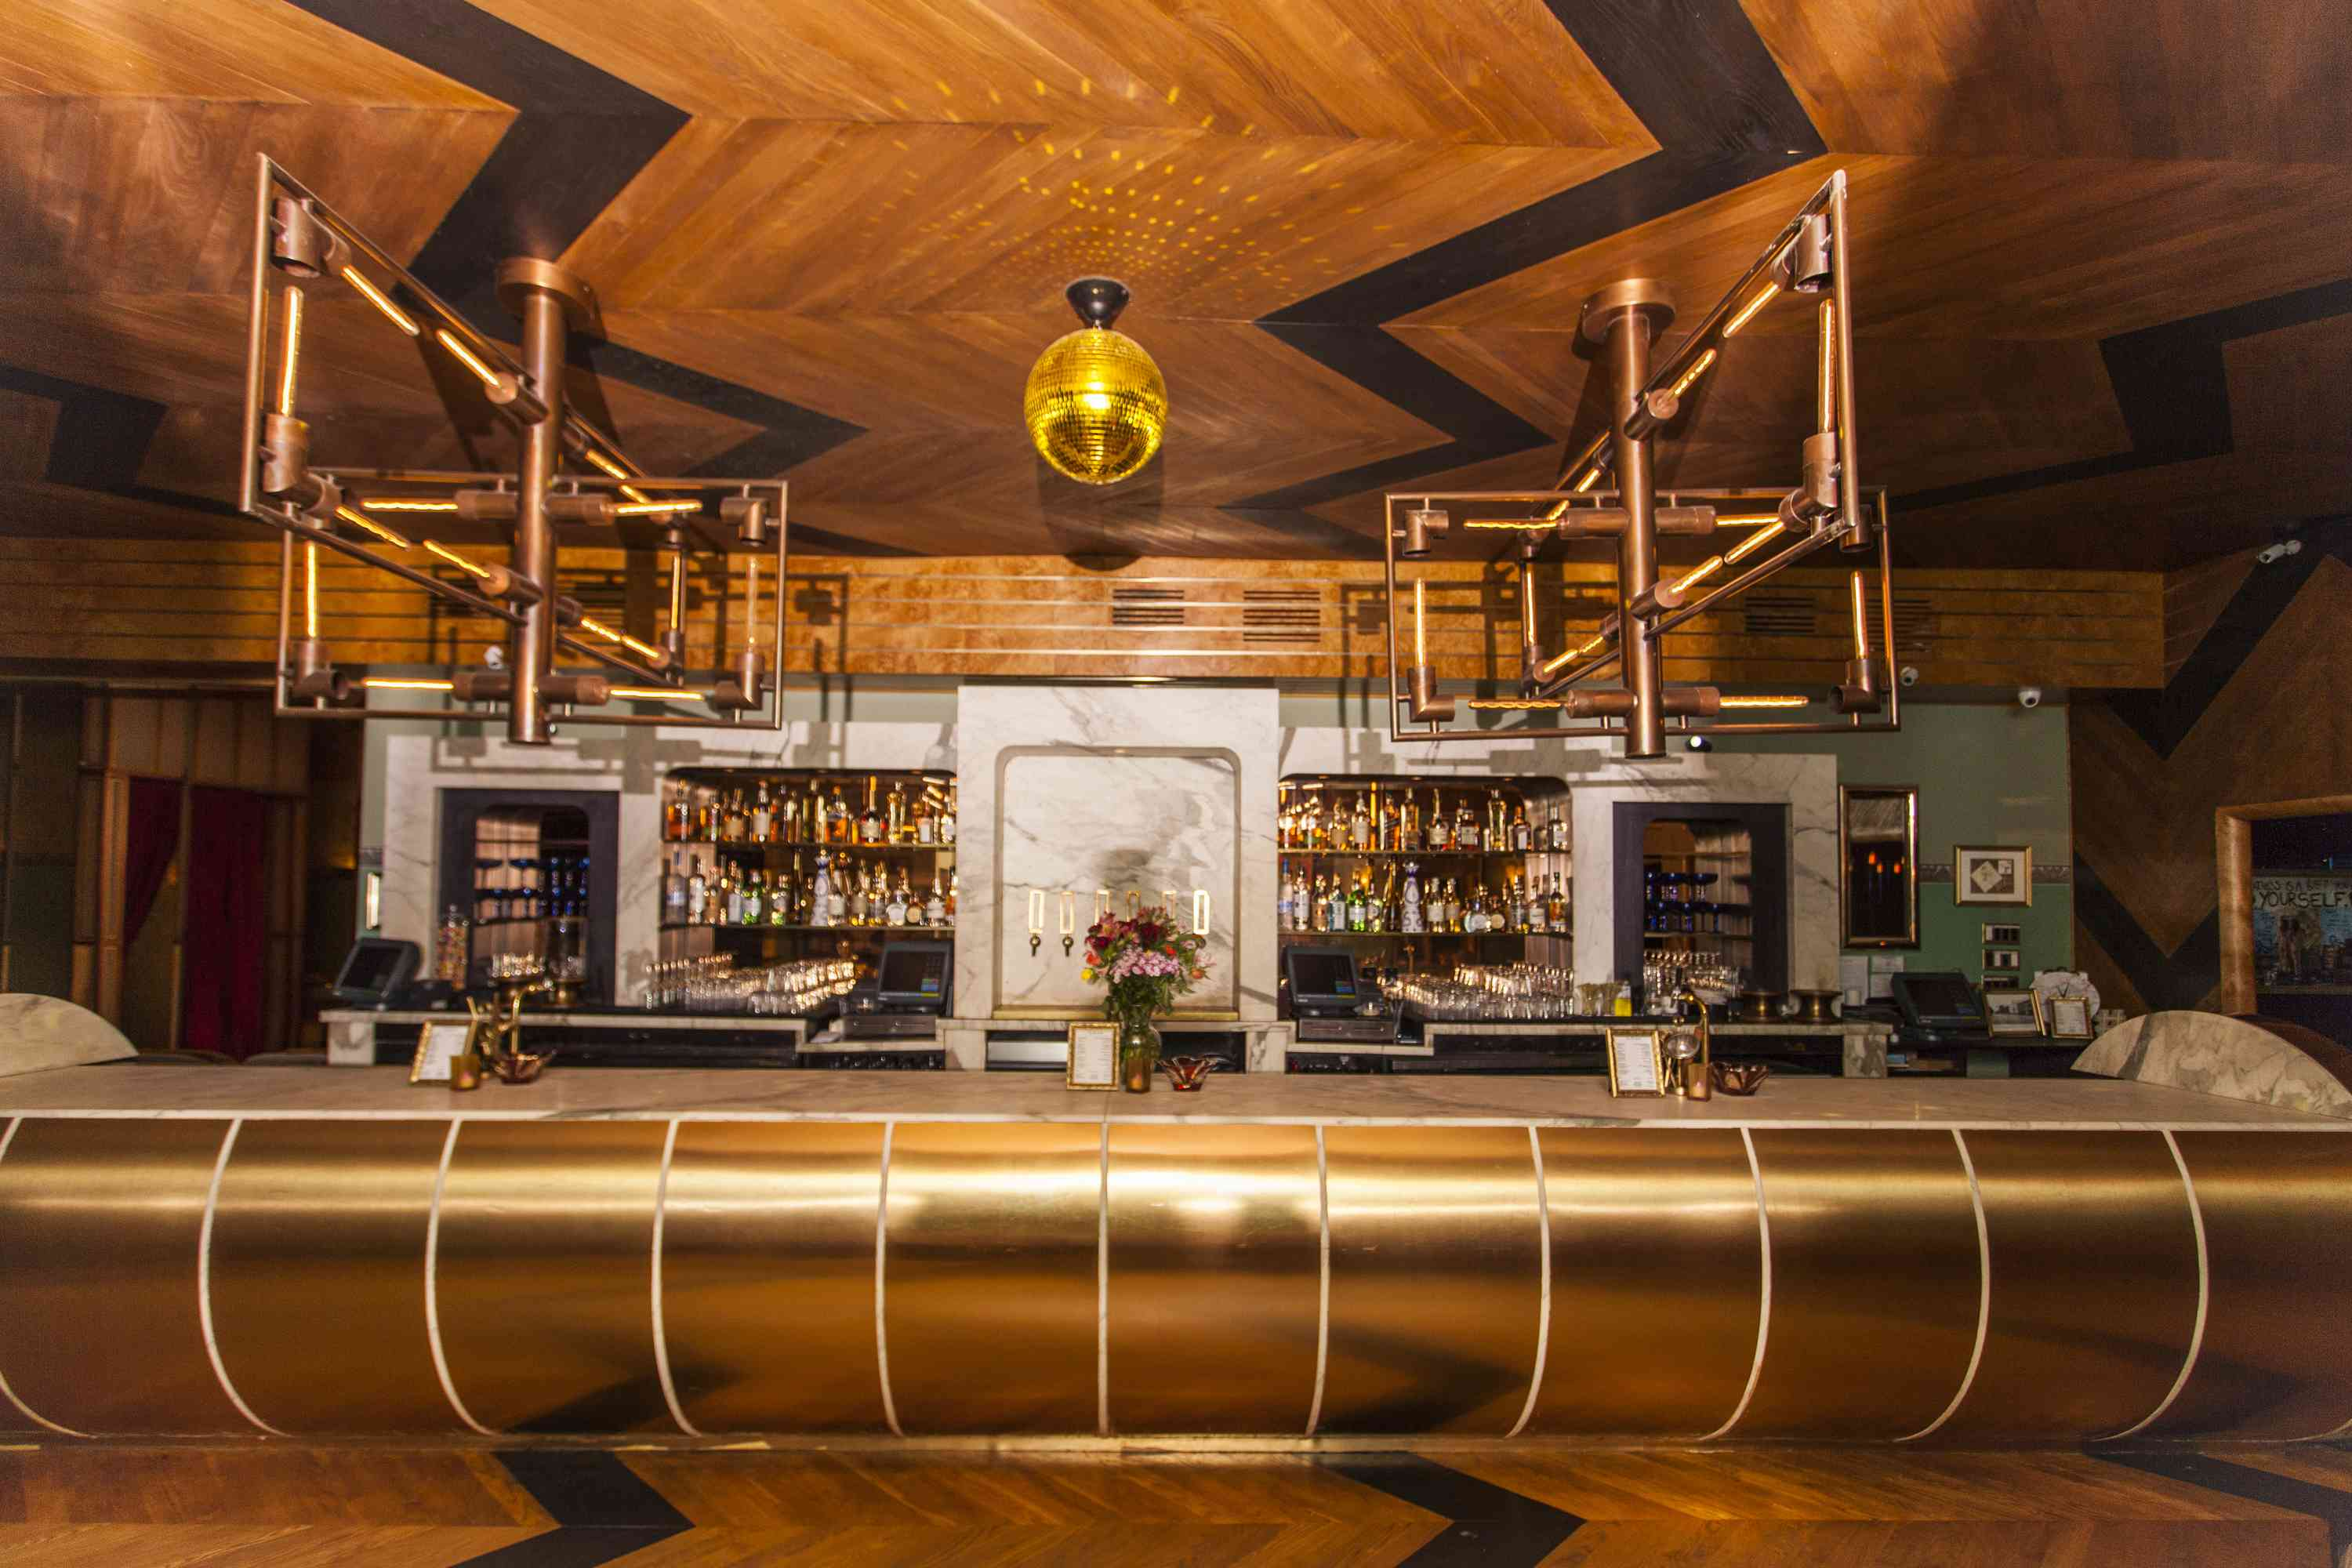 Metallic bar with a gold disco ball and industrial light fixtures